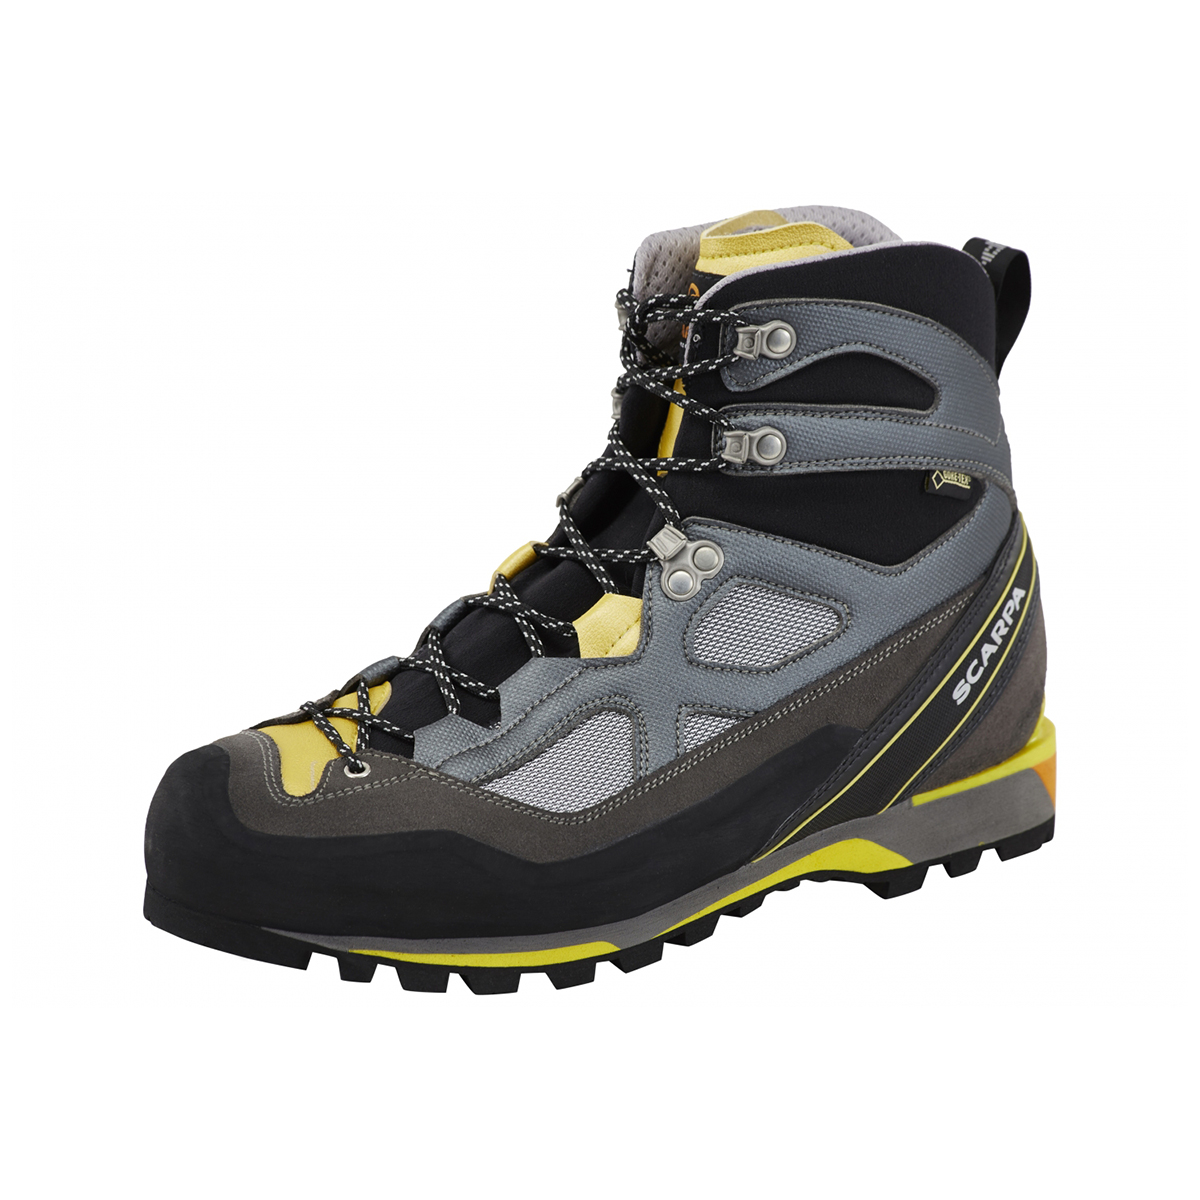 Scarpa Rebel Lite GTX Mountain Boot. Grey eb1abcebb4b